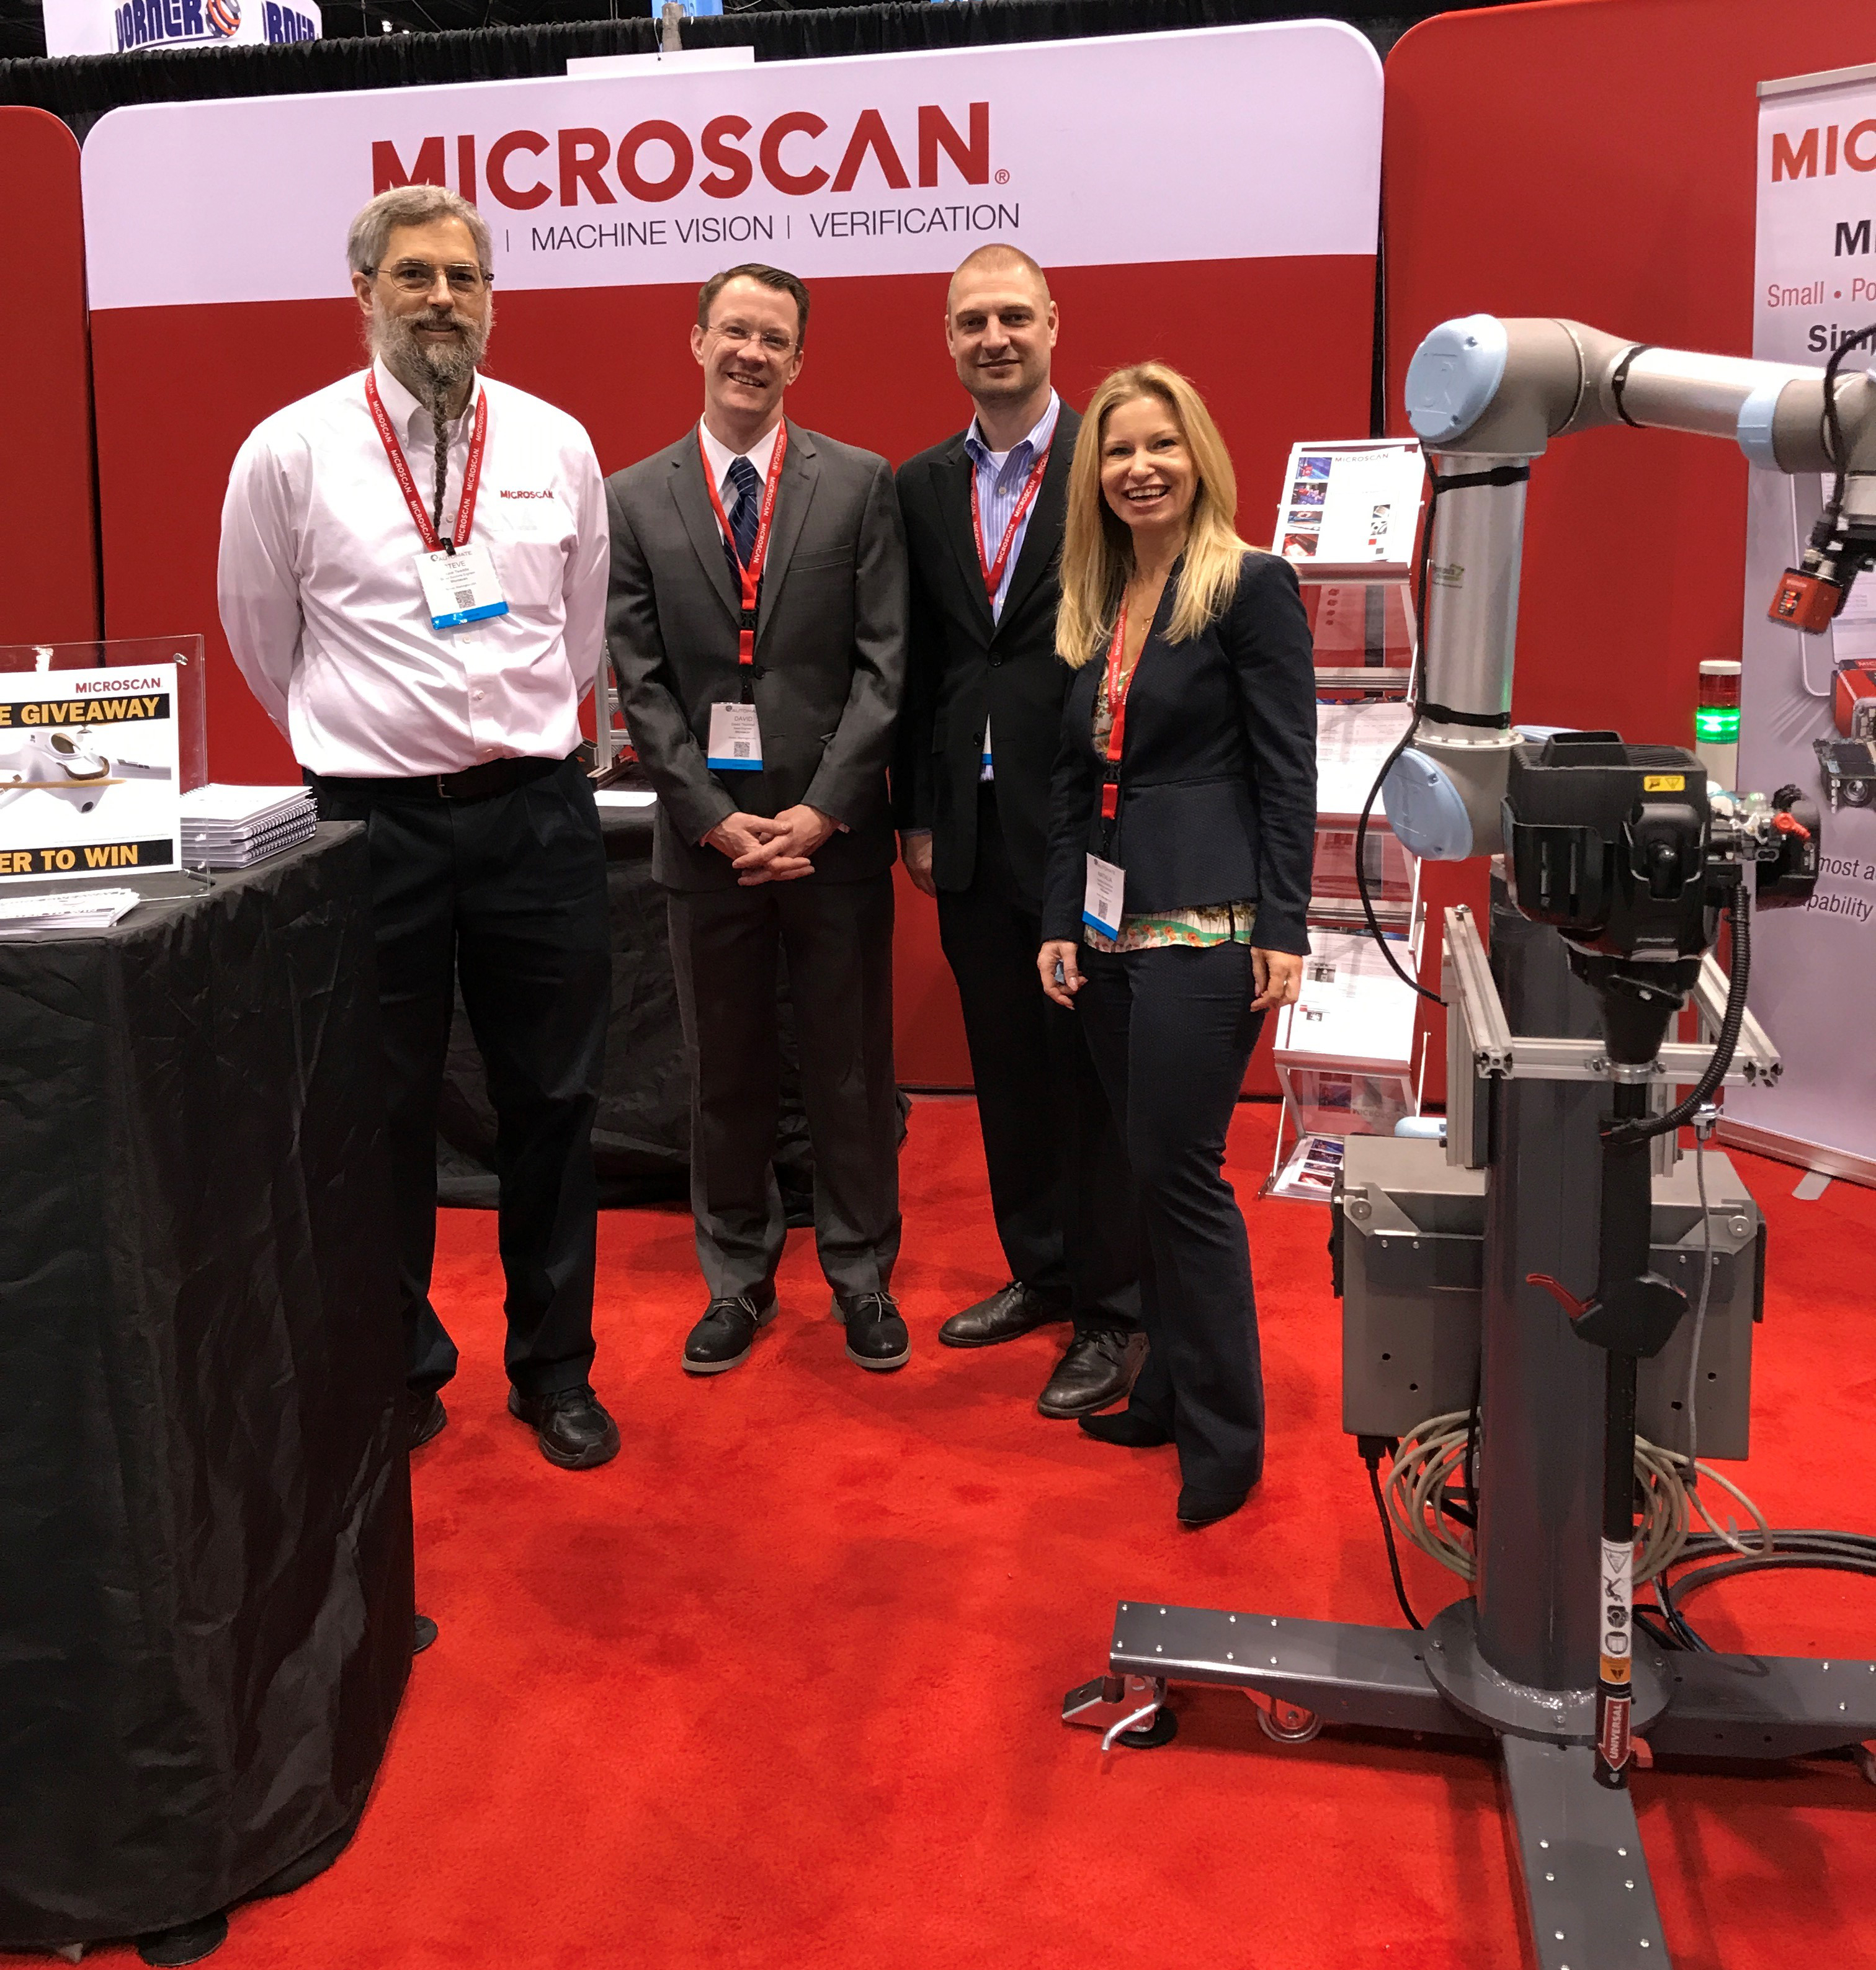 Microscan at Automate 2017